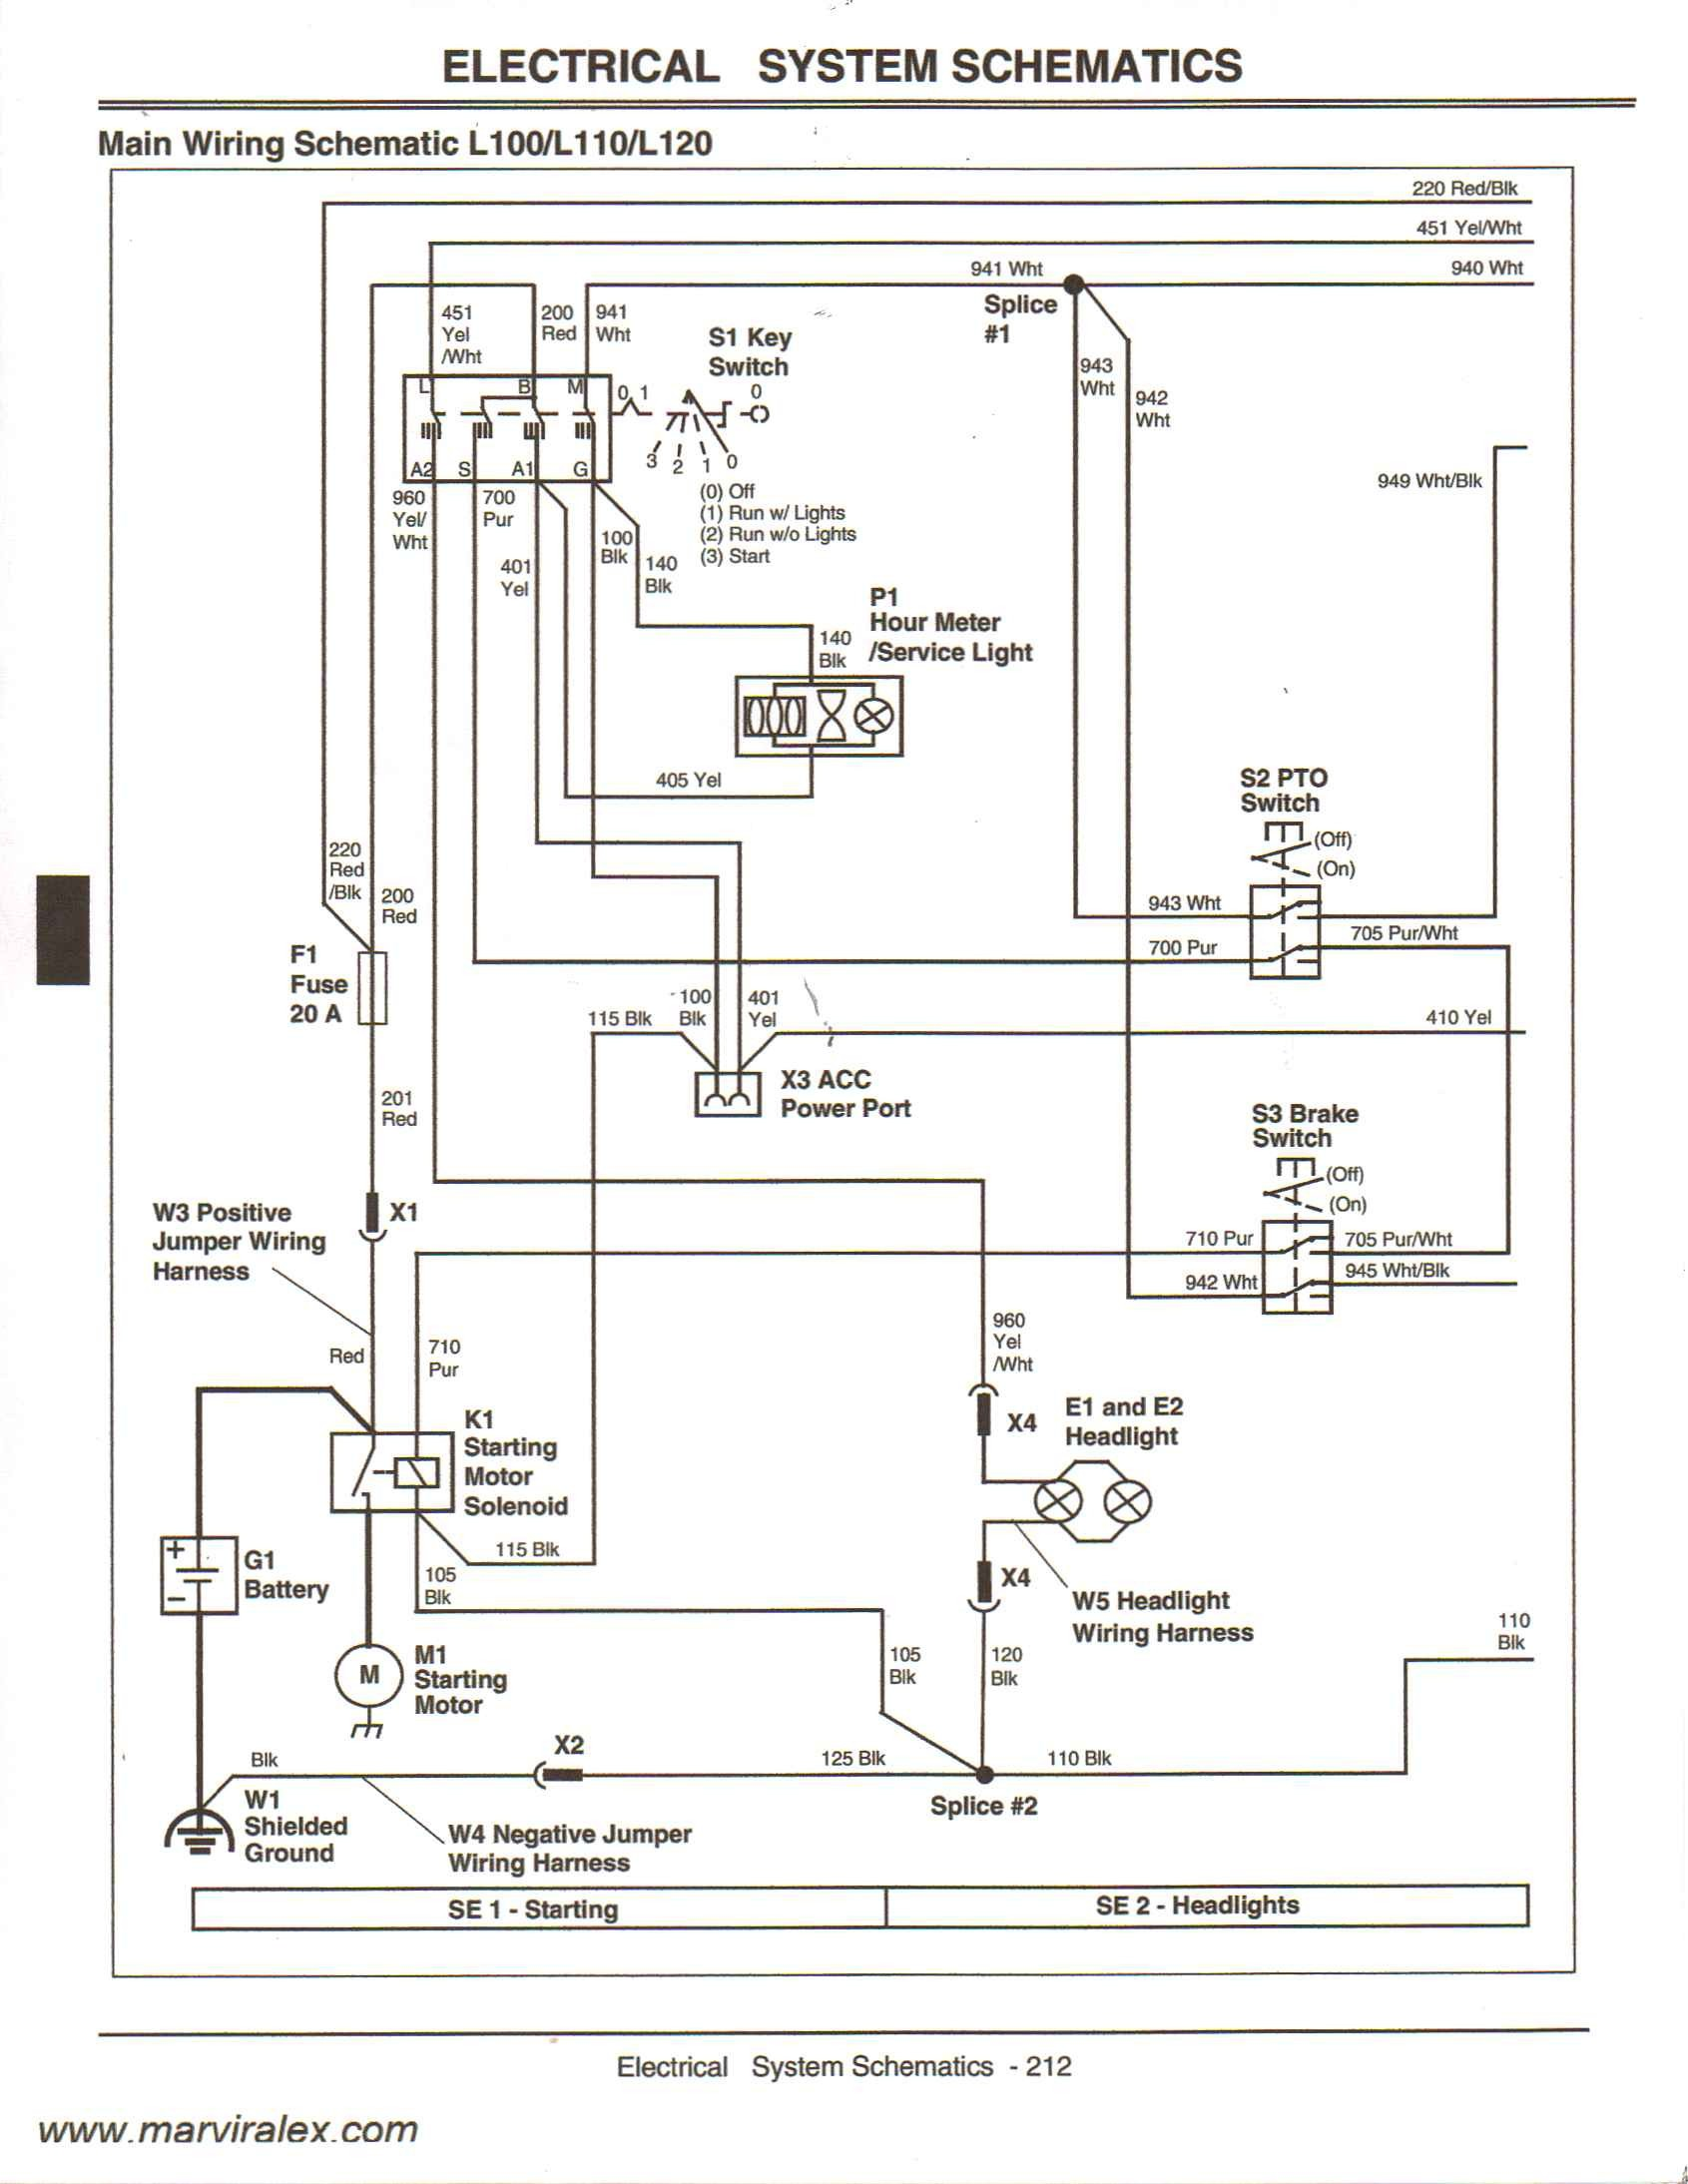 l130 wiring schematic wiring schematic diagraml130 wiring diagram wiring diagrams clicks john deere l130 wiring wiring diagram for john deere 212